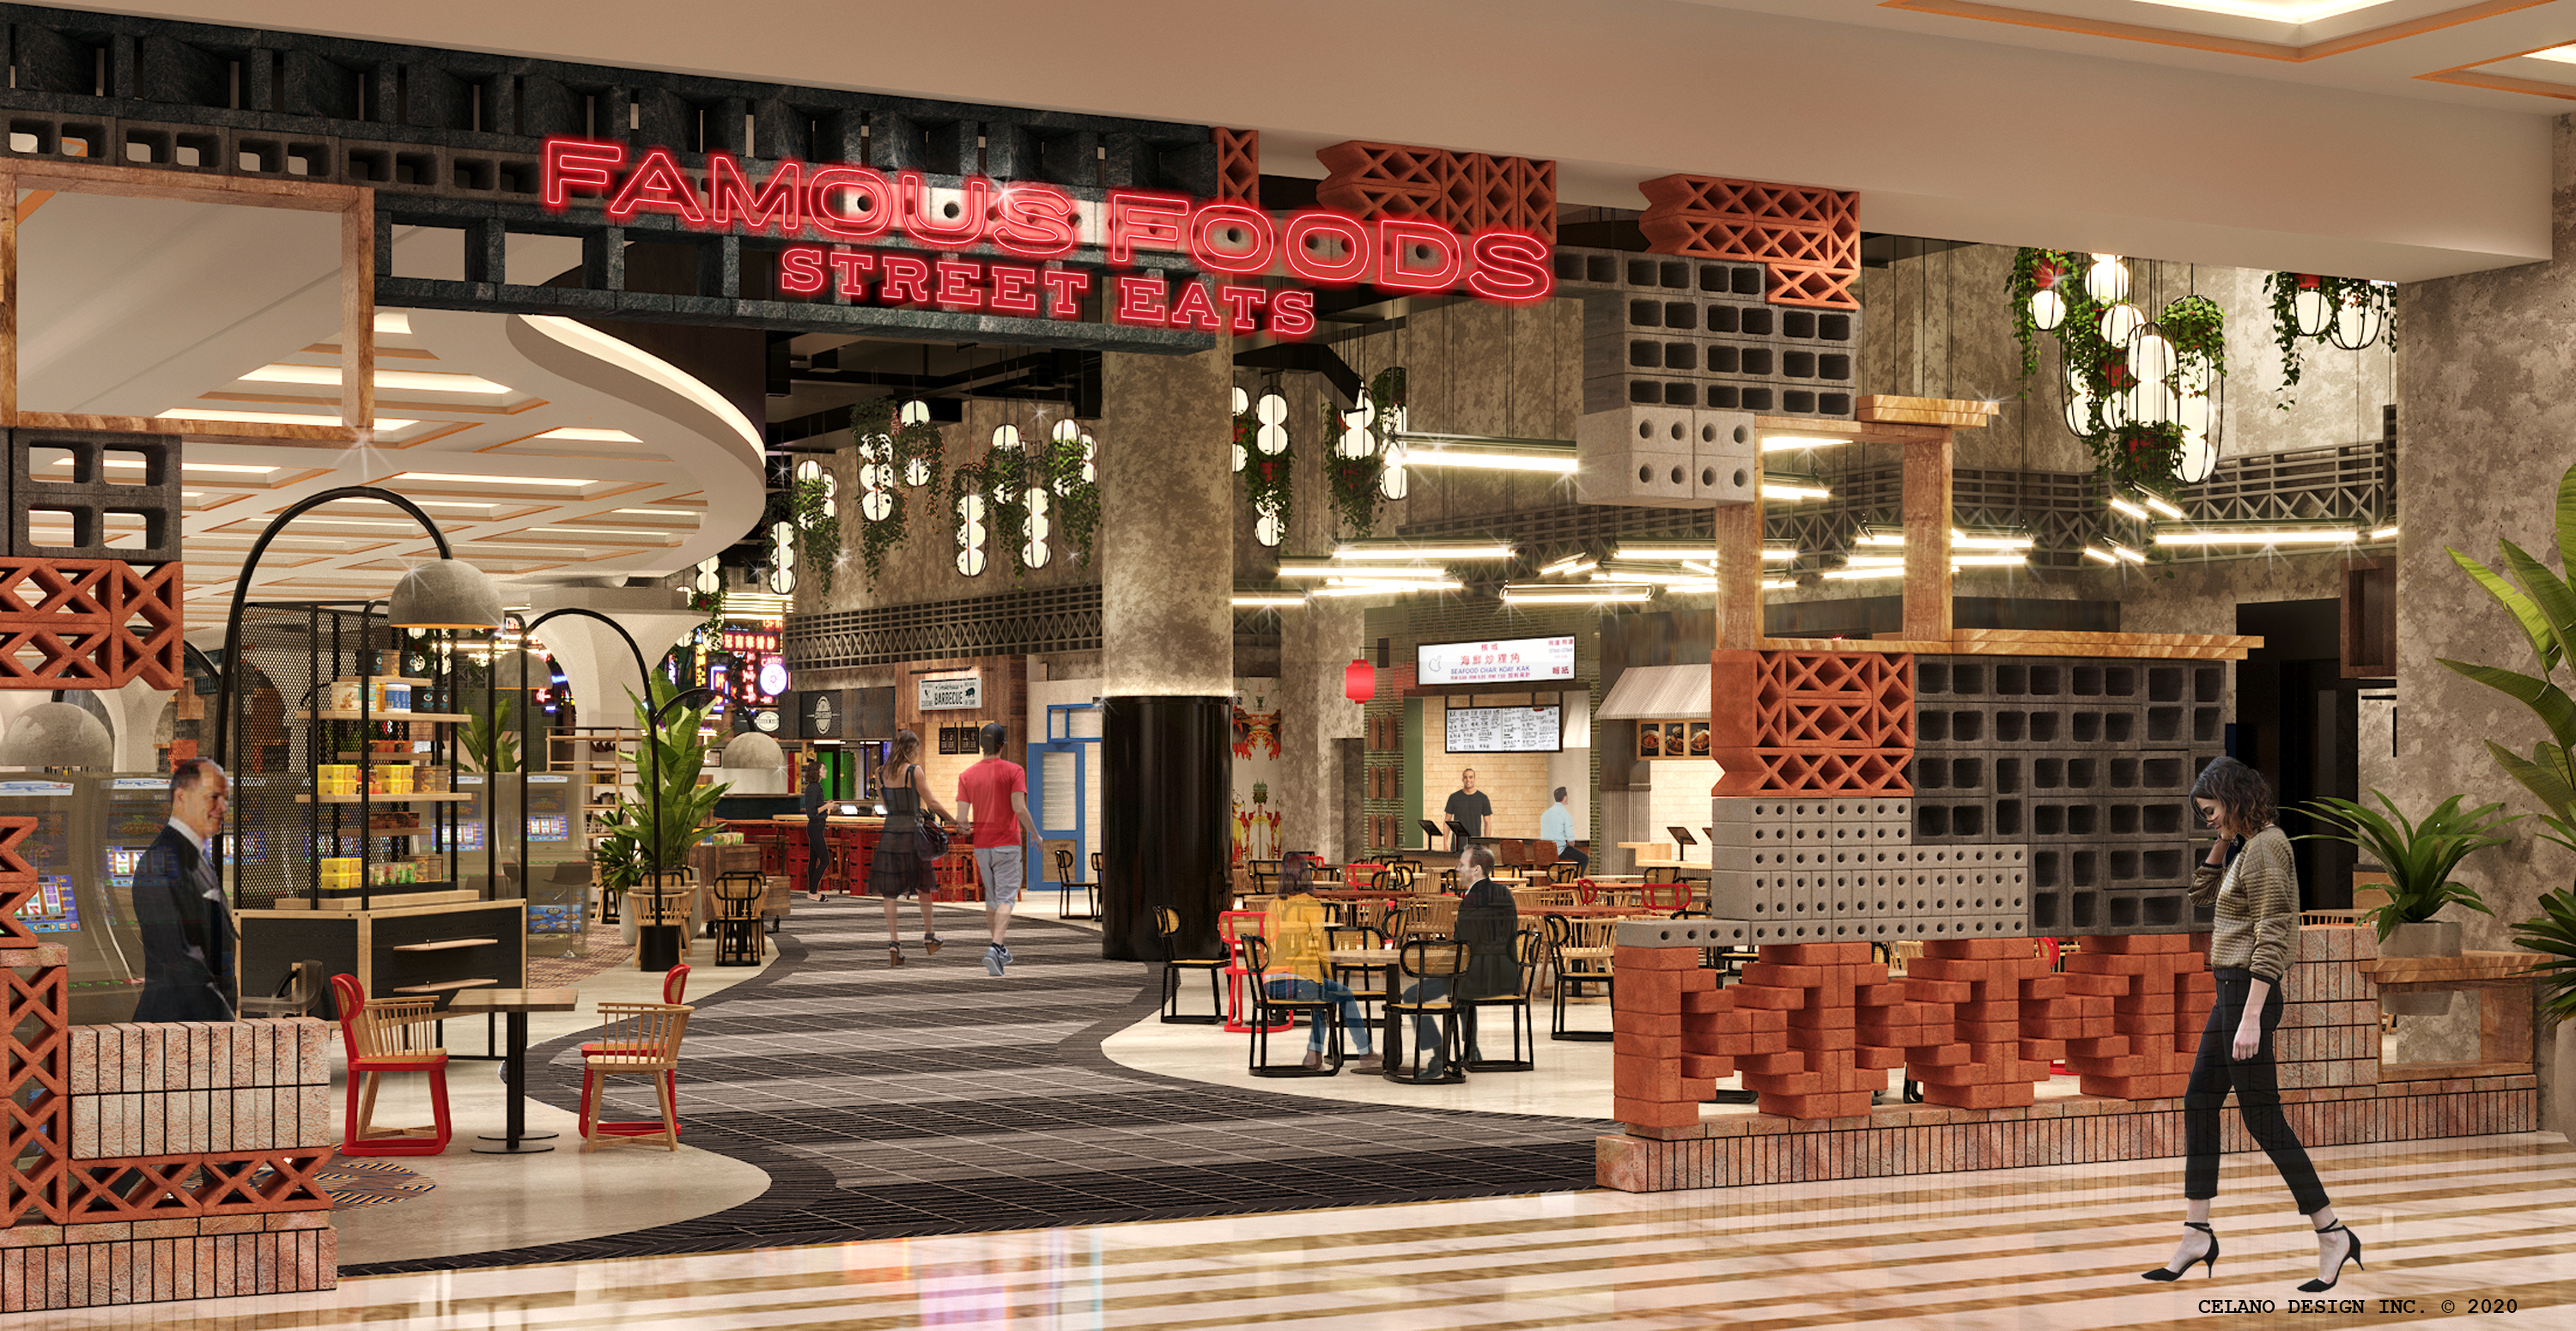 Famous Foods Street Eats will open at Resorts World Las Vegas in late June or early July and offer guests a wide selection of authentic cuisines from Singapore, Malaysia, Thailand and beyond.